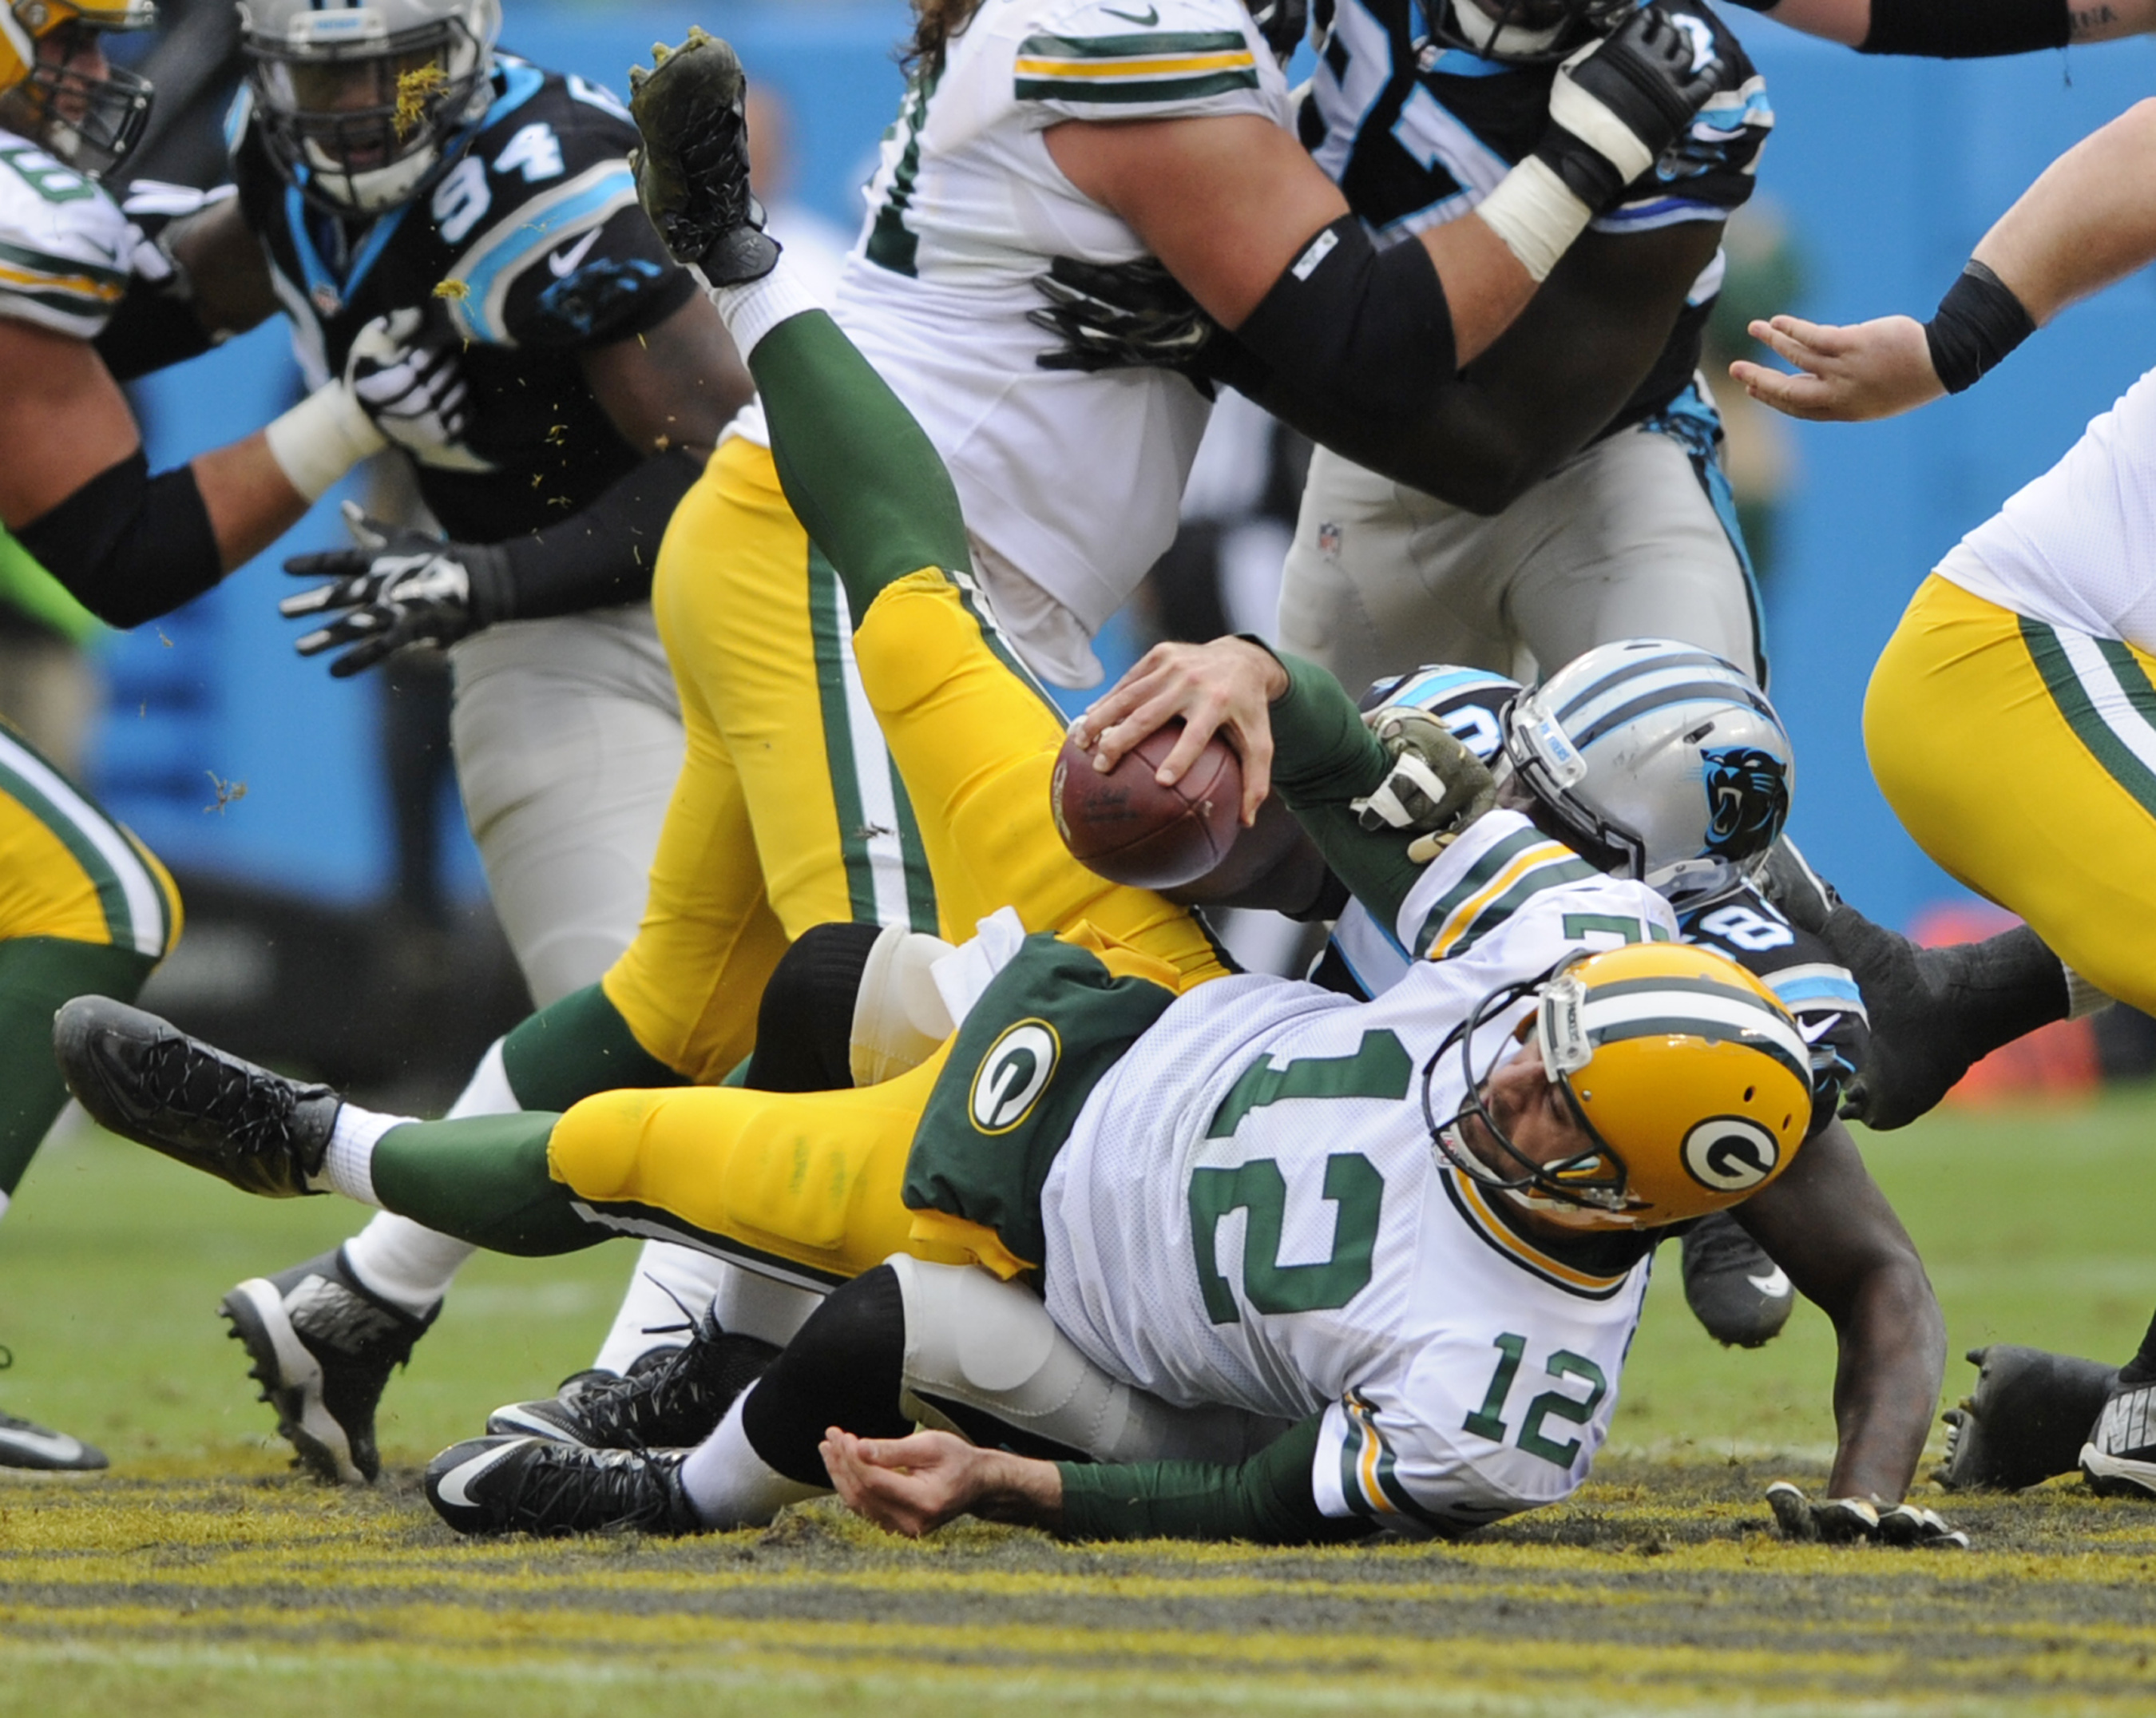 Green Bay Packers' Aaron Rodgers (12) is sacked by Carolina Panthers' Thomas Davis (58) in the first half of an NFL football game in Charlotte, N.C., Sunday, Nov. 8, 2015. (AP Photo/Mike McCarn)